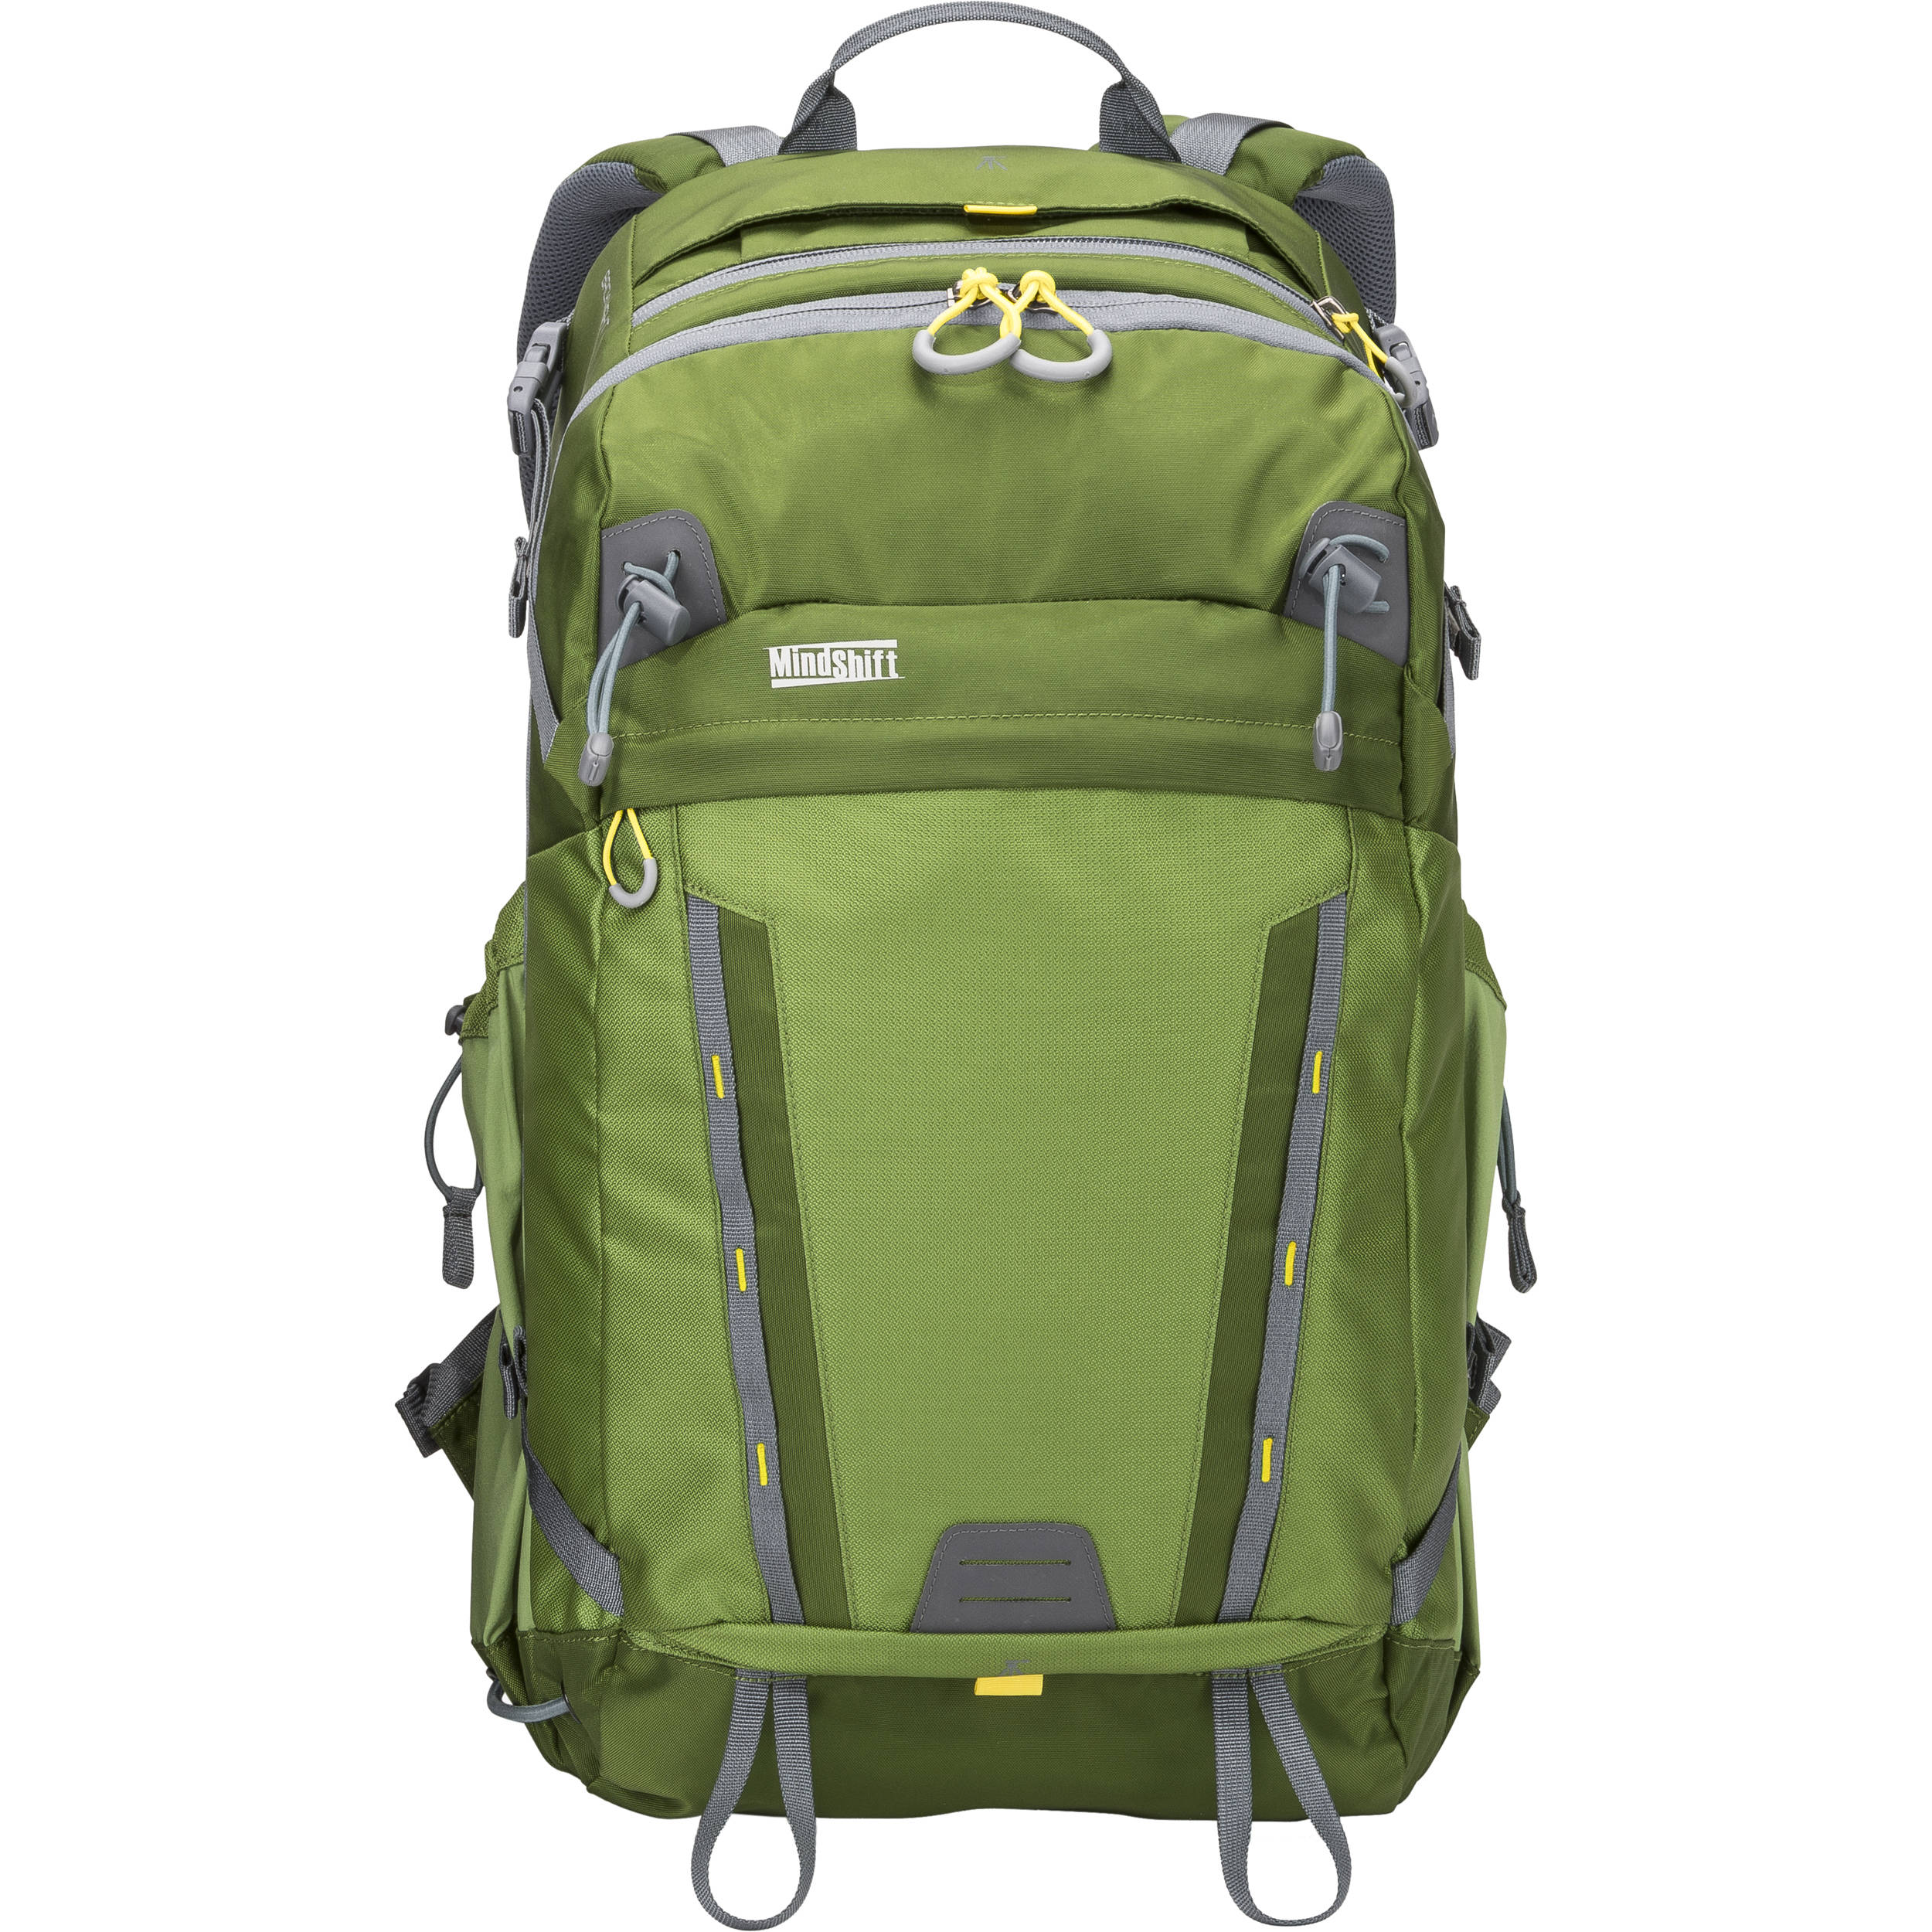 MindShift Gear BackLight 26L Backpack (Greenfield) 361 B&H Photo